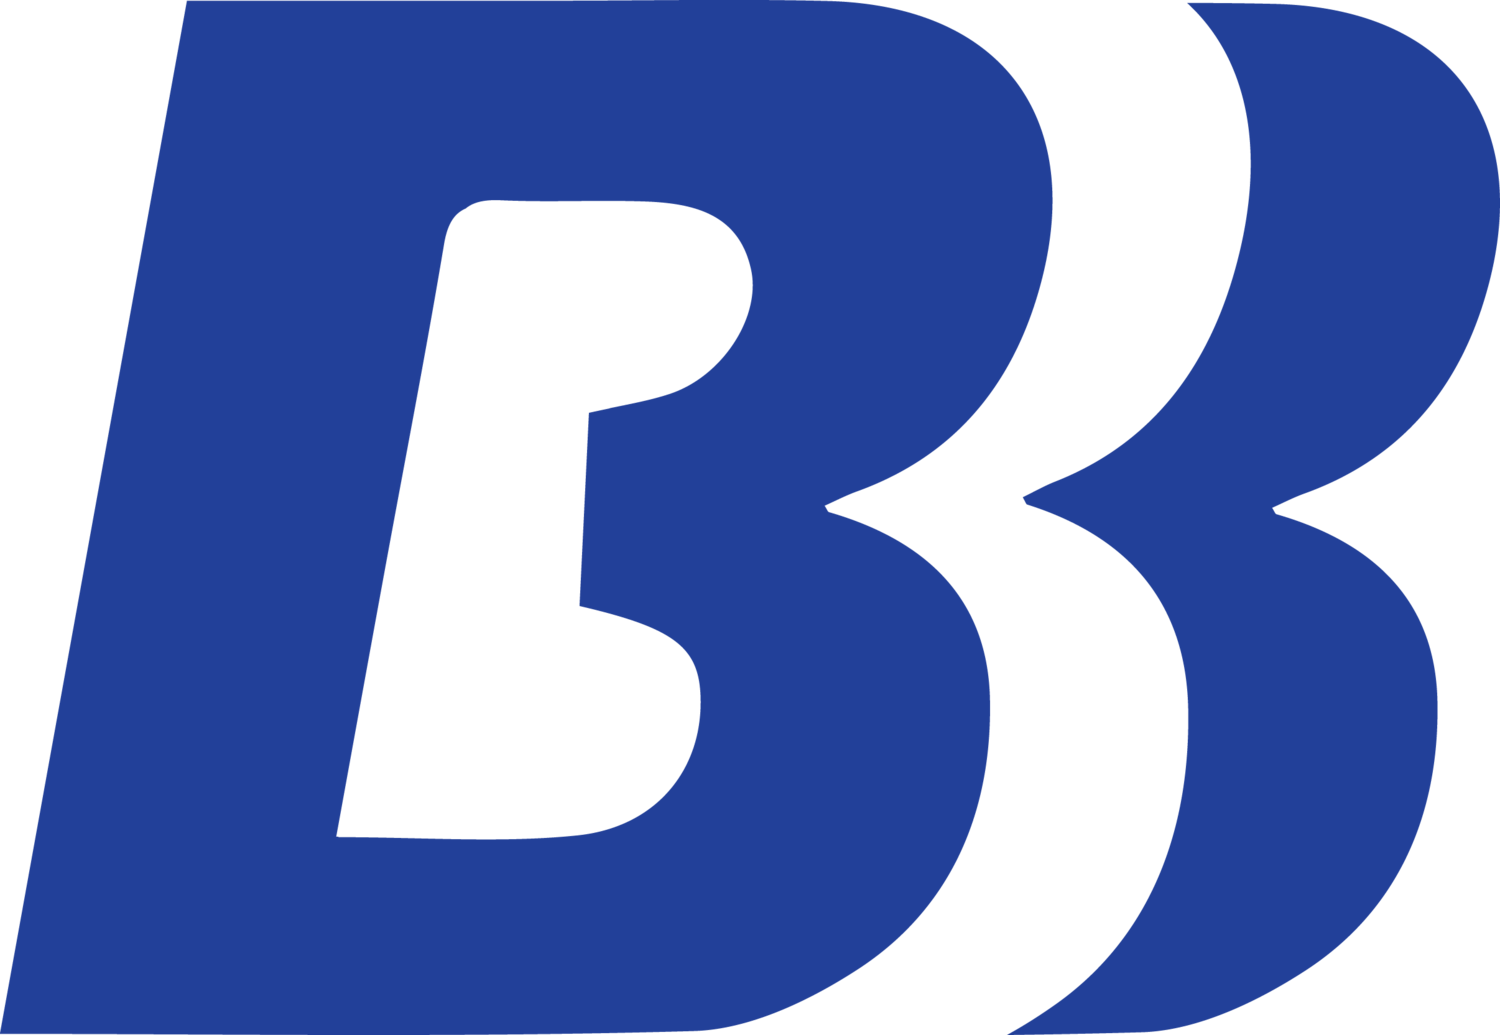 Big Blue Technologies